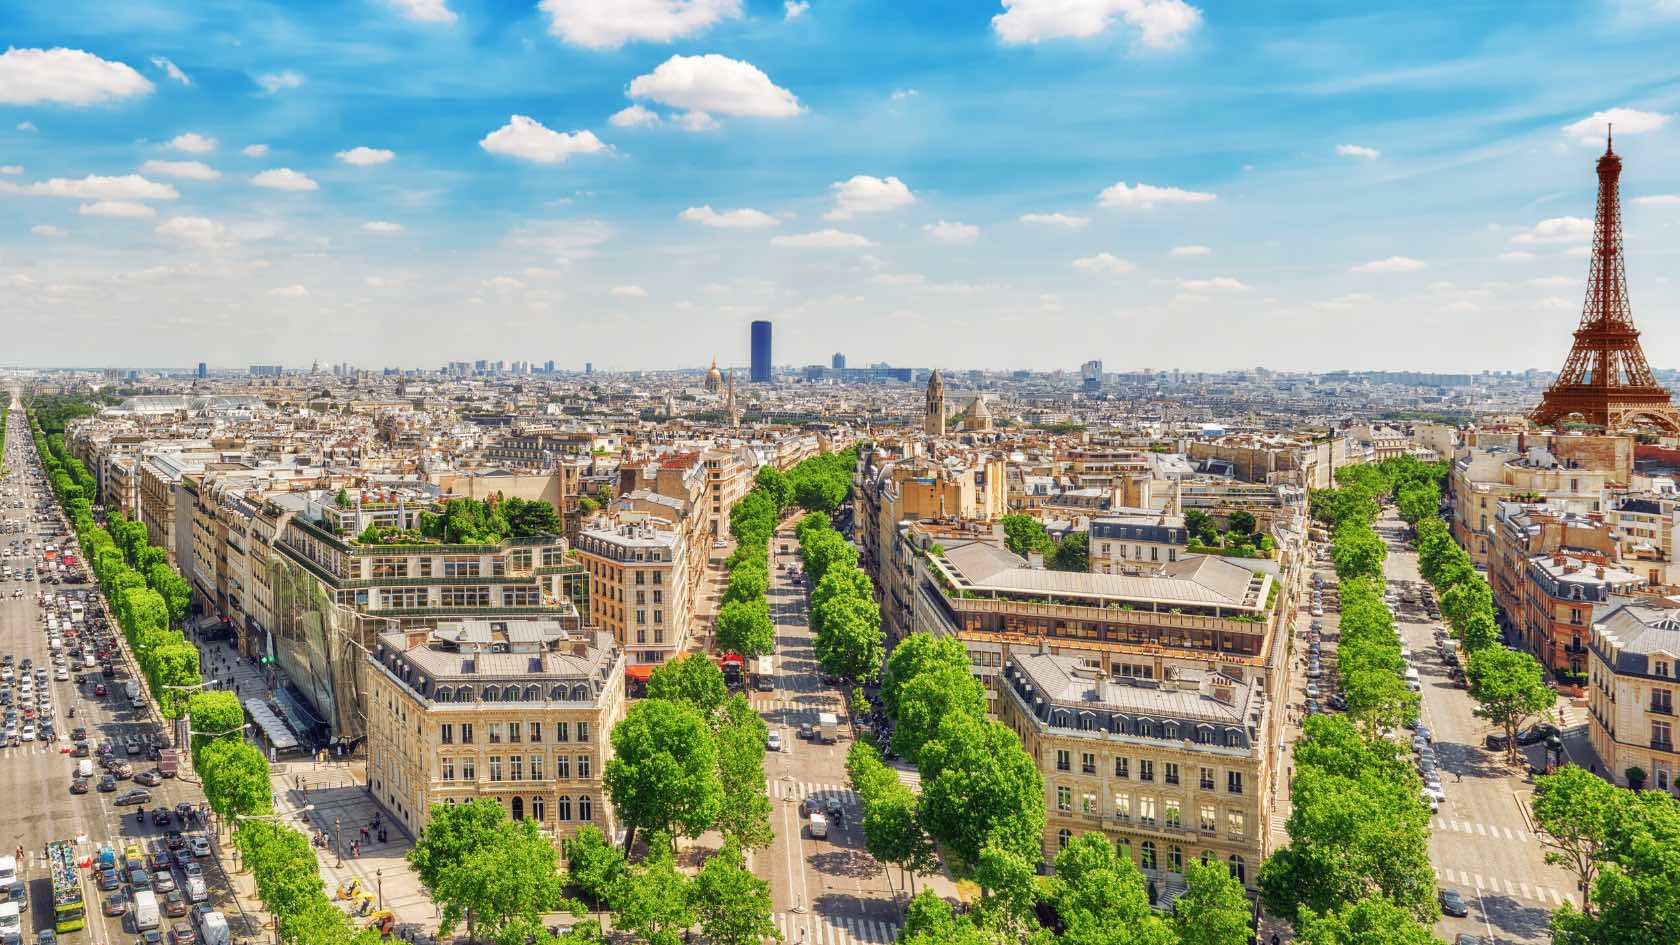 News: Champs Elysee in Paris to transform into a green oasis